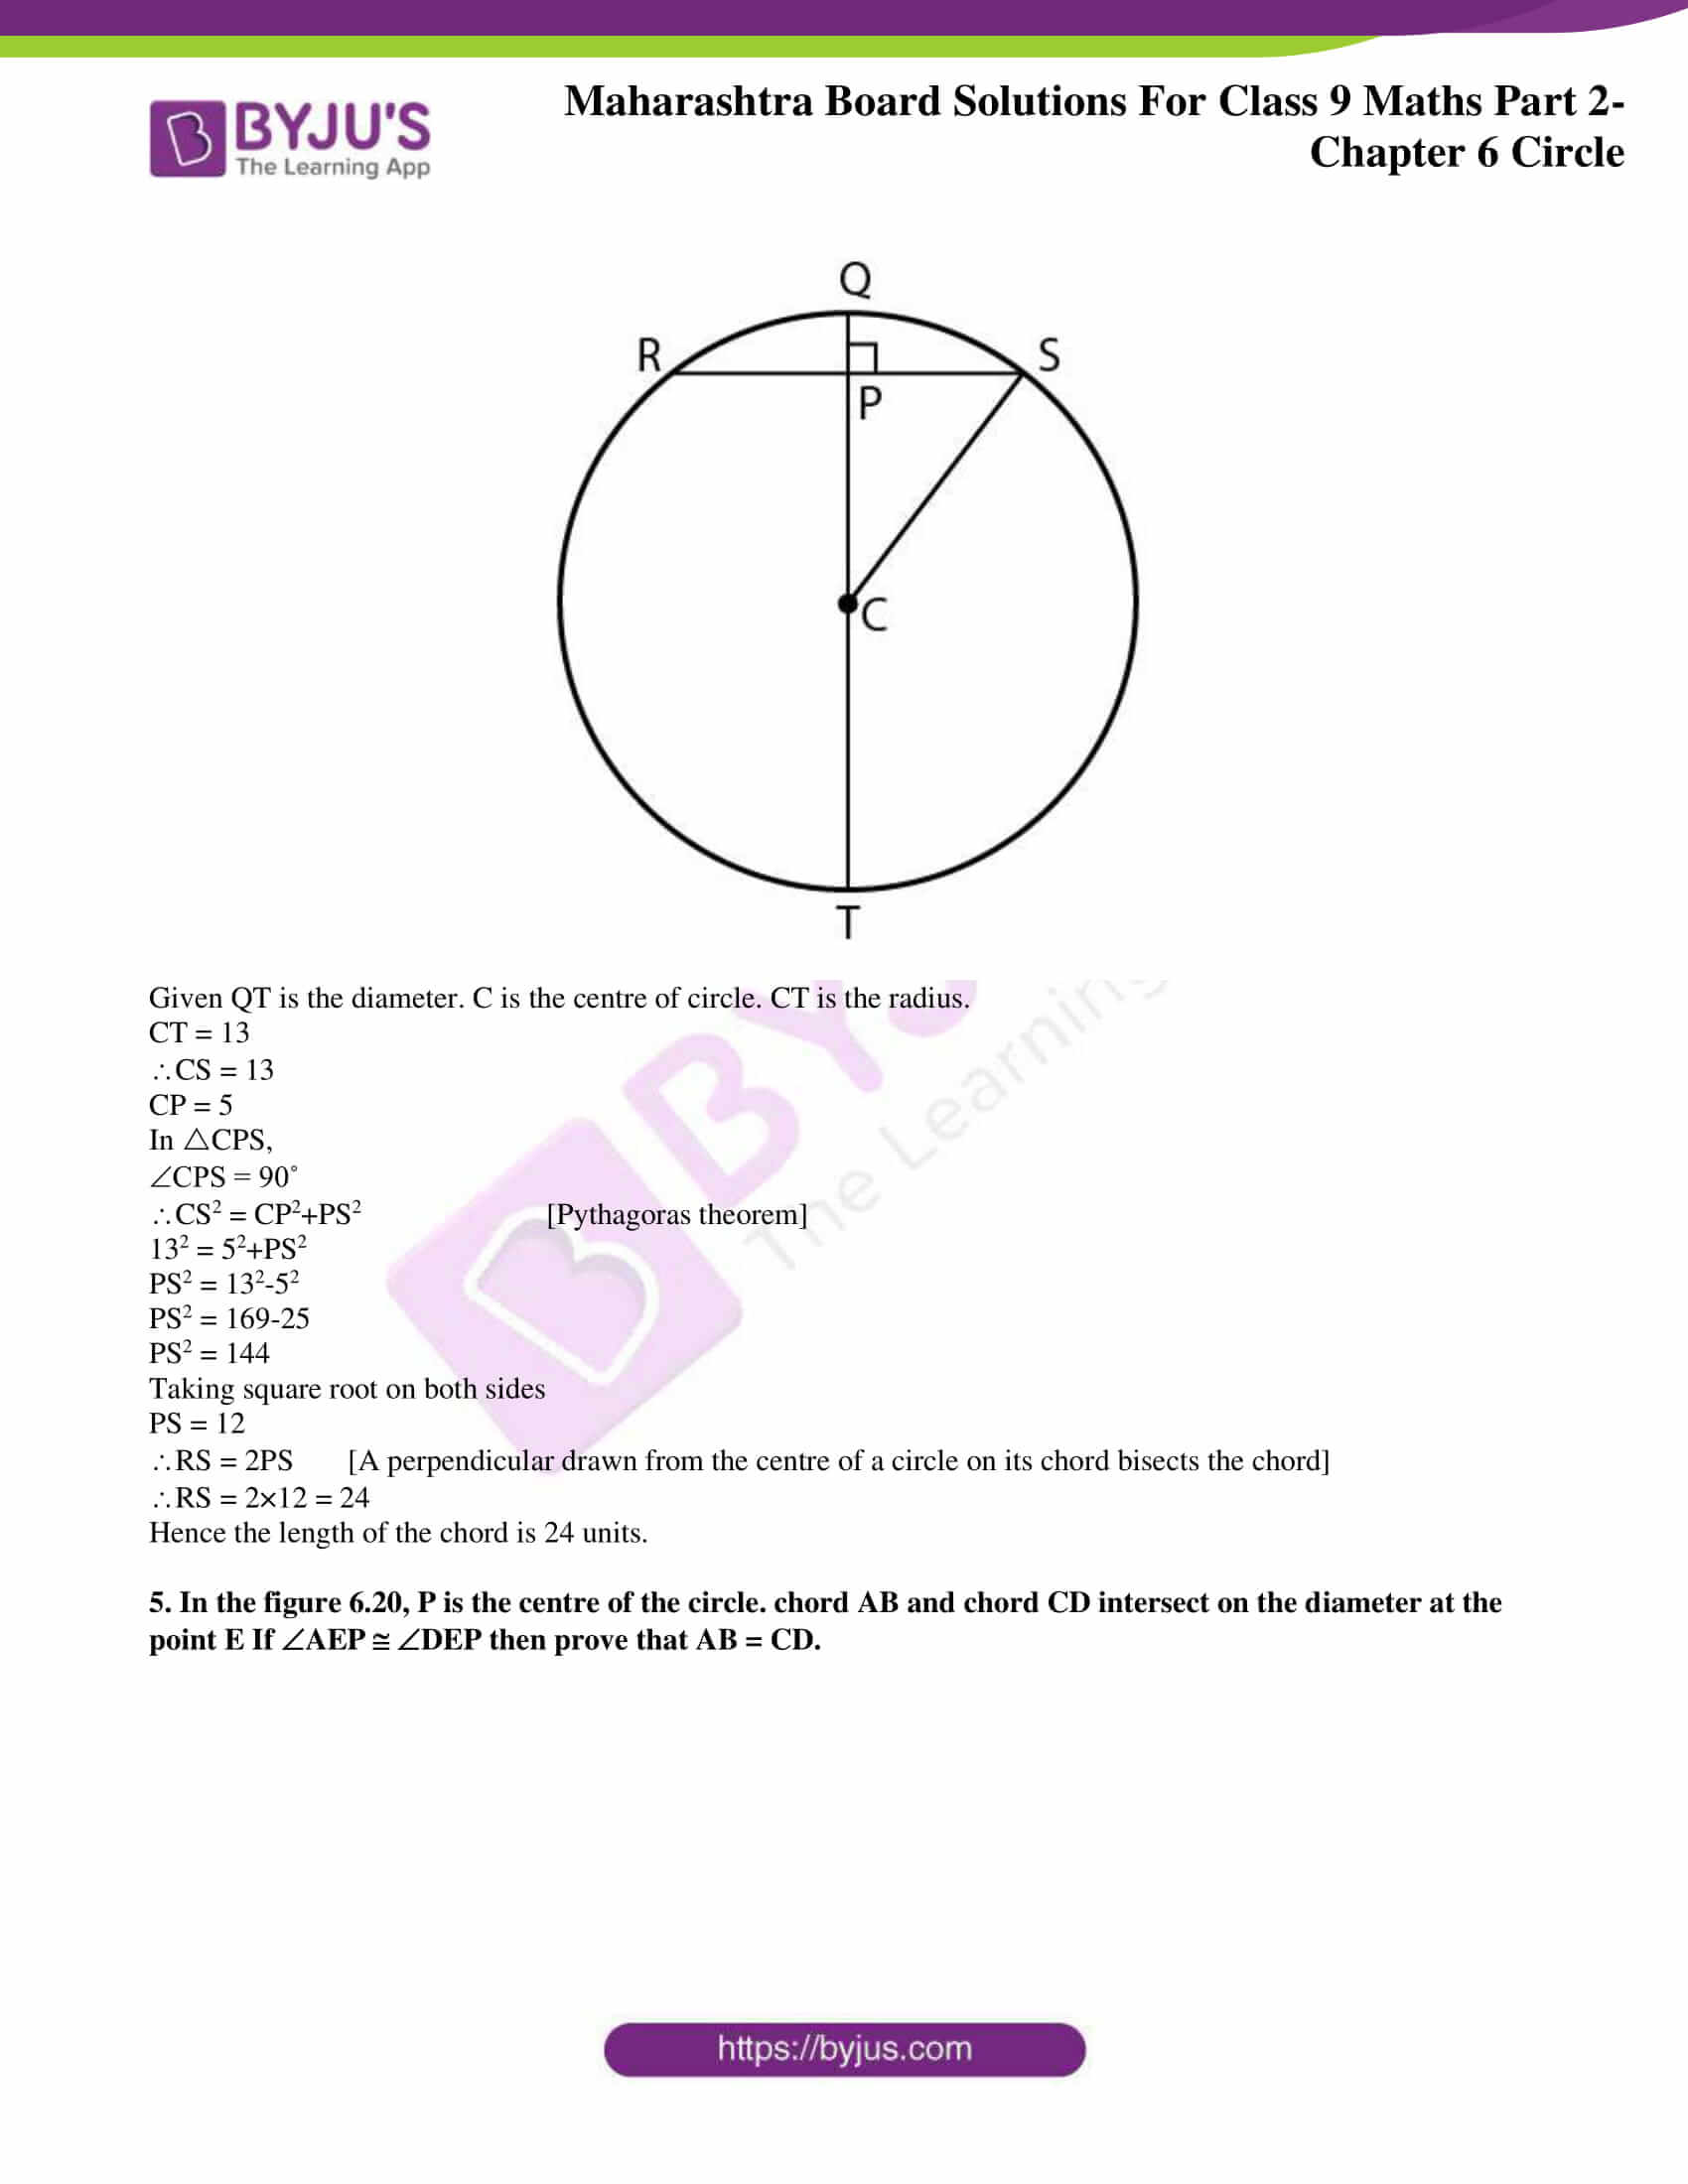 msbshse solutions for class 9 maths part 2 chapter 6 27